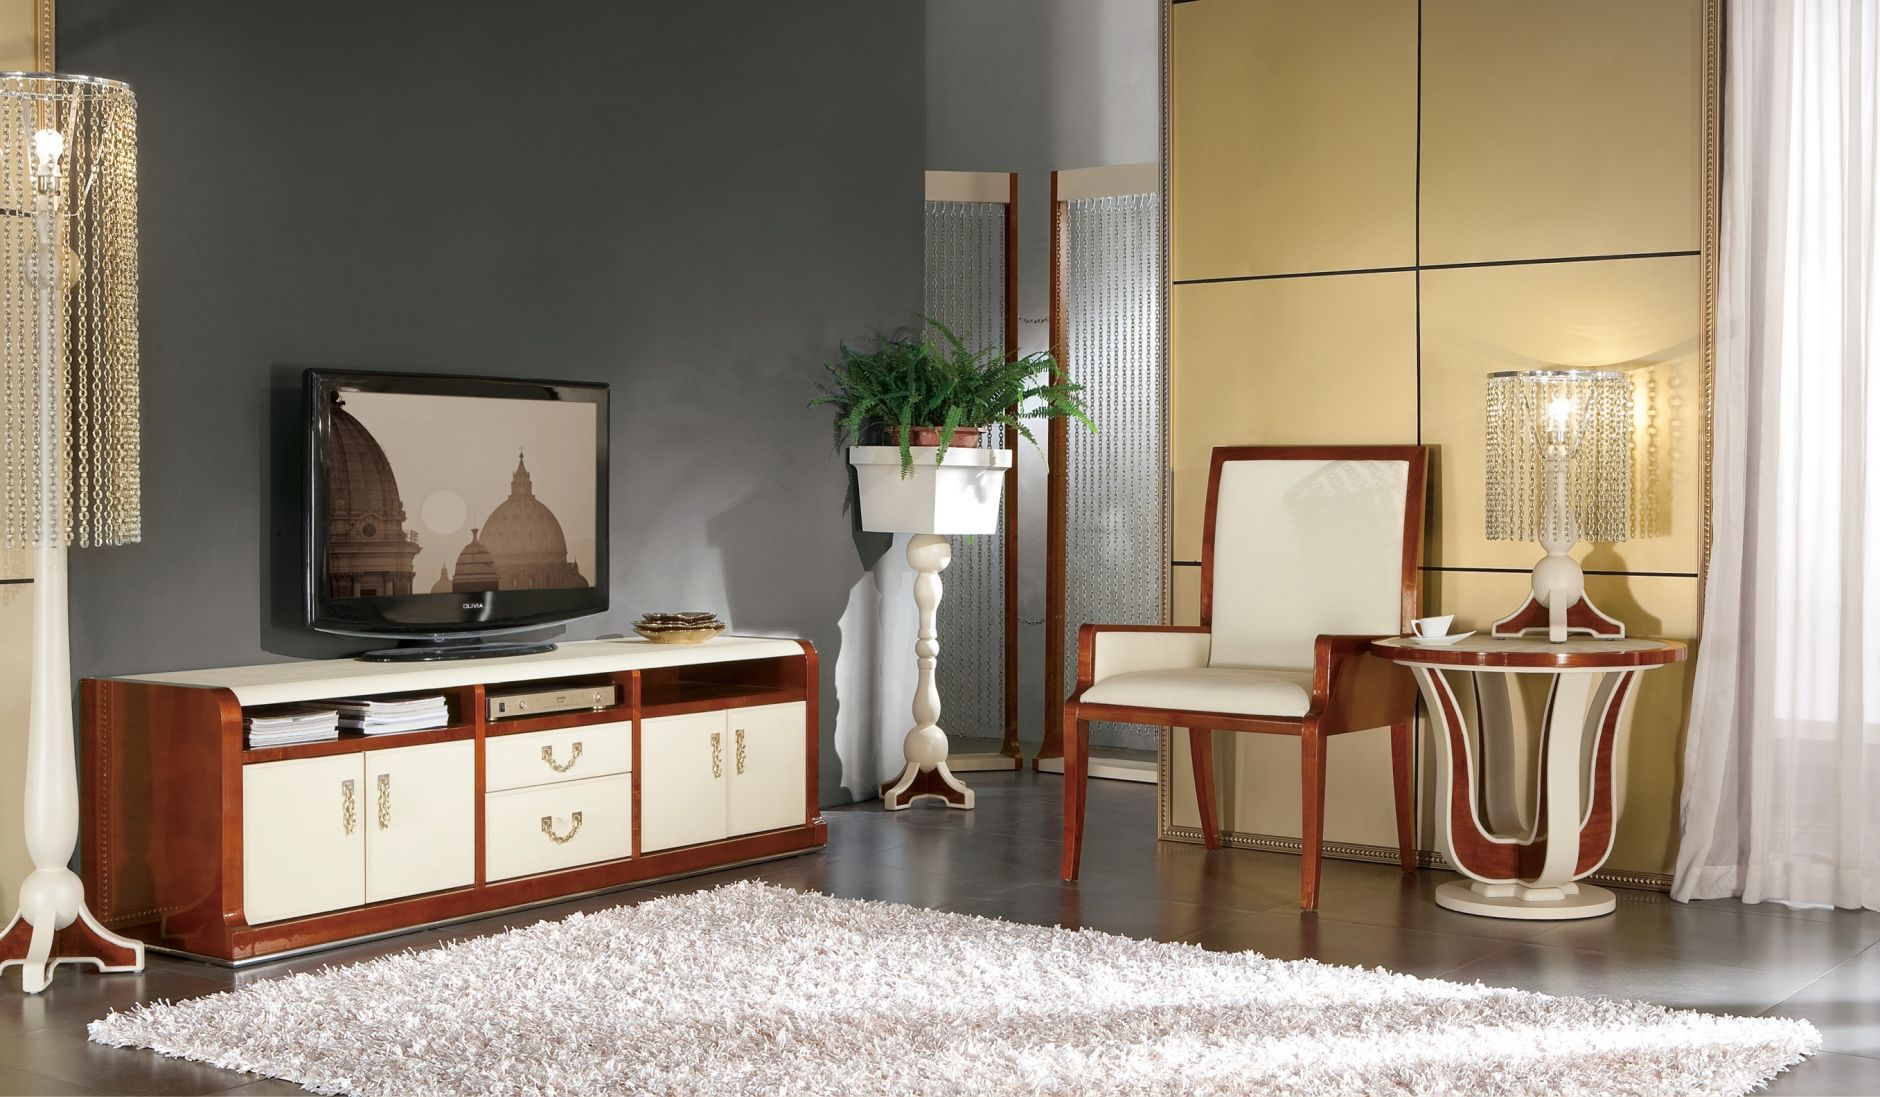 designer m bel design tv schrank serie ys001die m bel aus italien. Black Bedroom Furniture Sets. Home Design Ideas